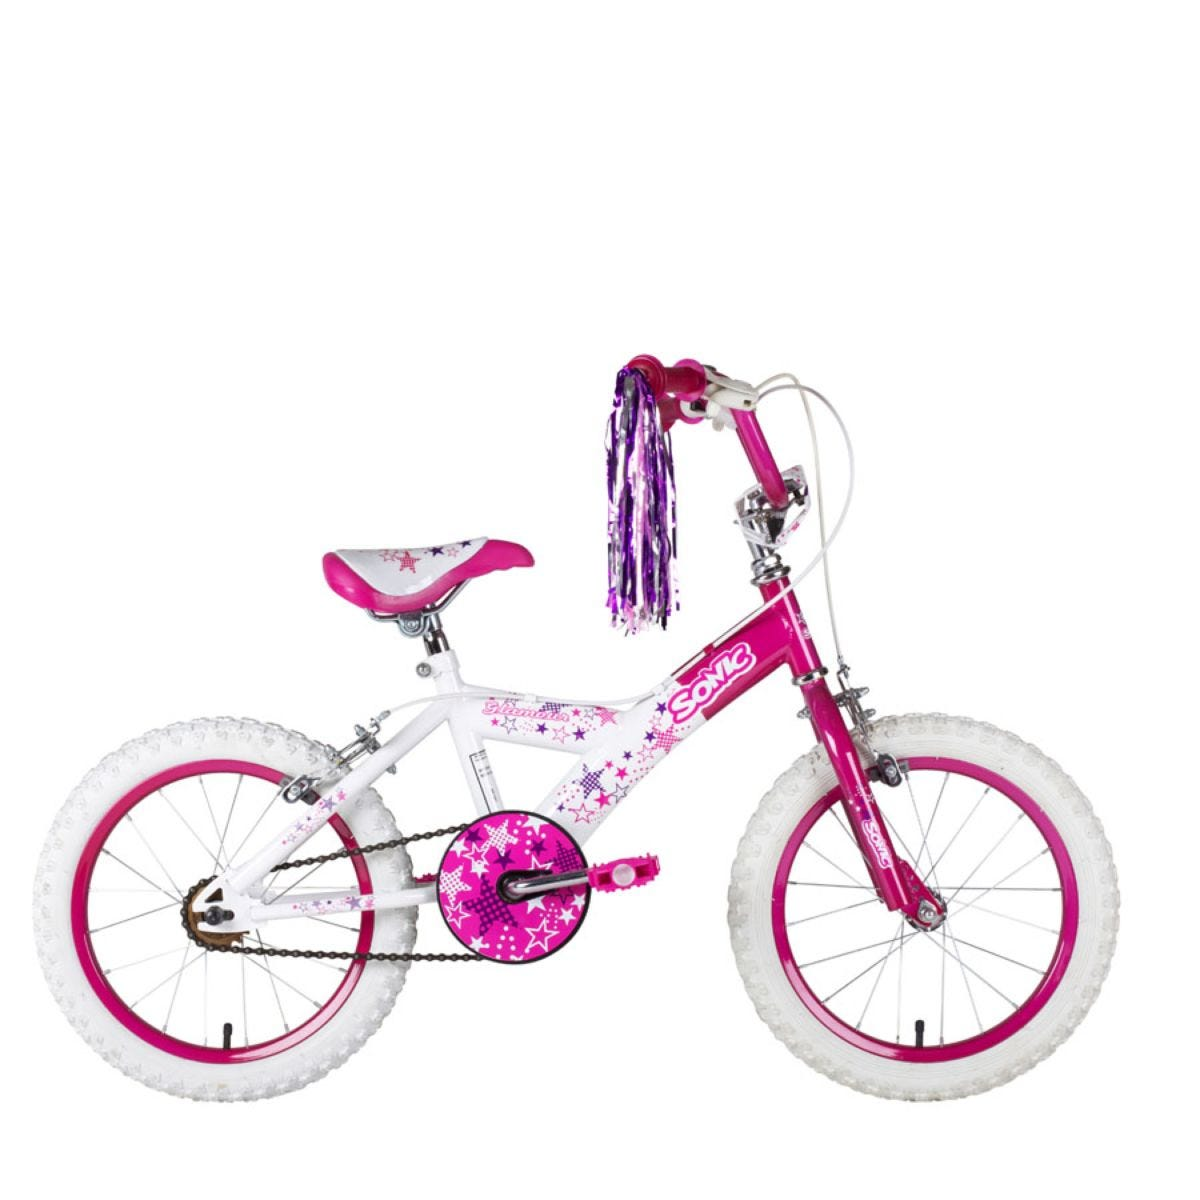 Sonic Glamour II 16 Inch Wheel Girls Bike Single Speed - Pink